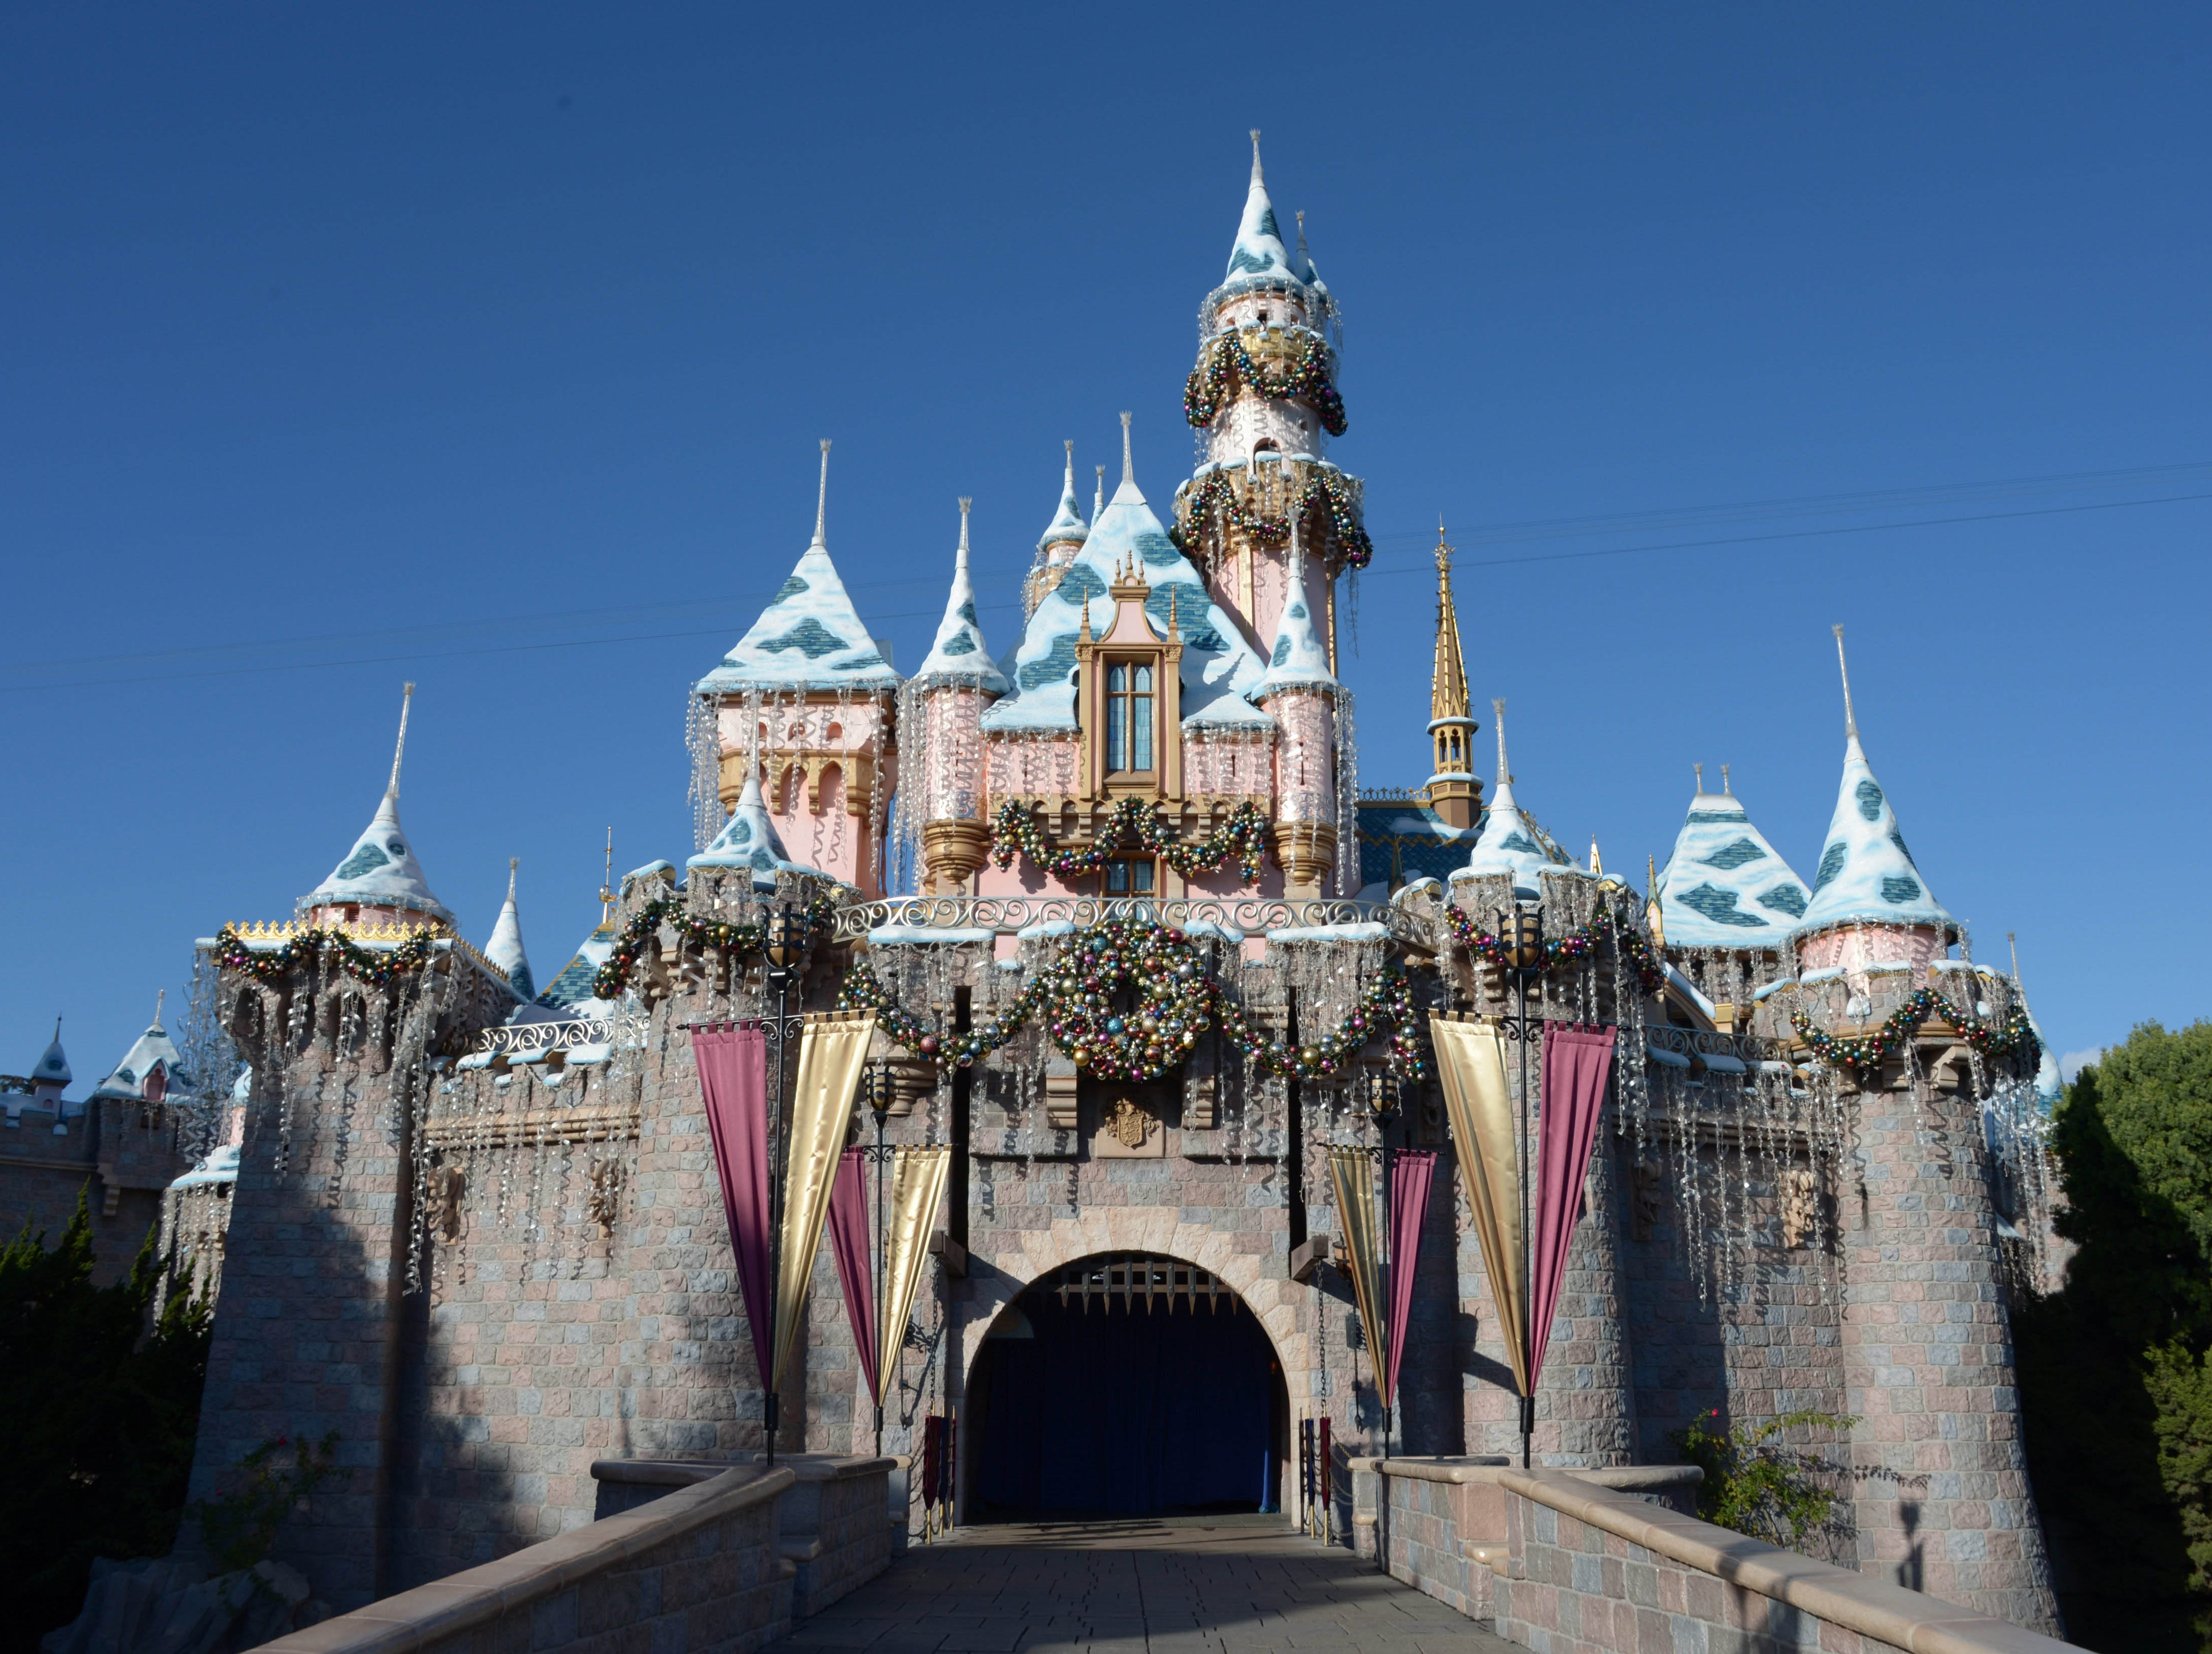 The price of a regular single-day ticket to Disneyland is now $129, up more than 17% since January 2018.